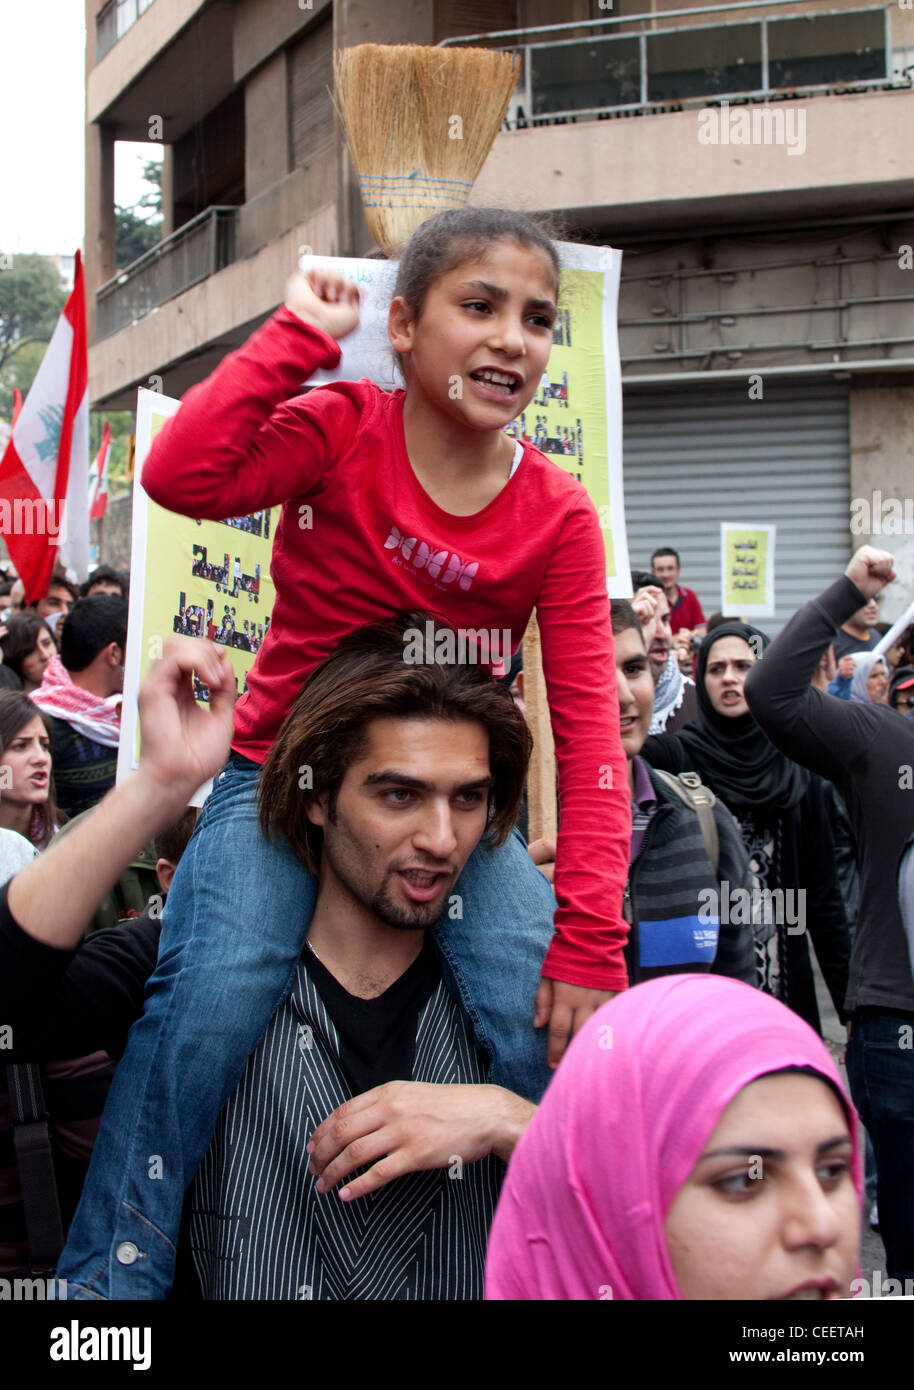 Young girl chants political slogans as she is carried on shoulders of young man at political demonstration in Beirut, Stock Photo